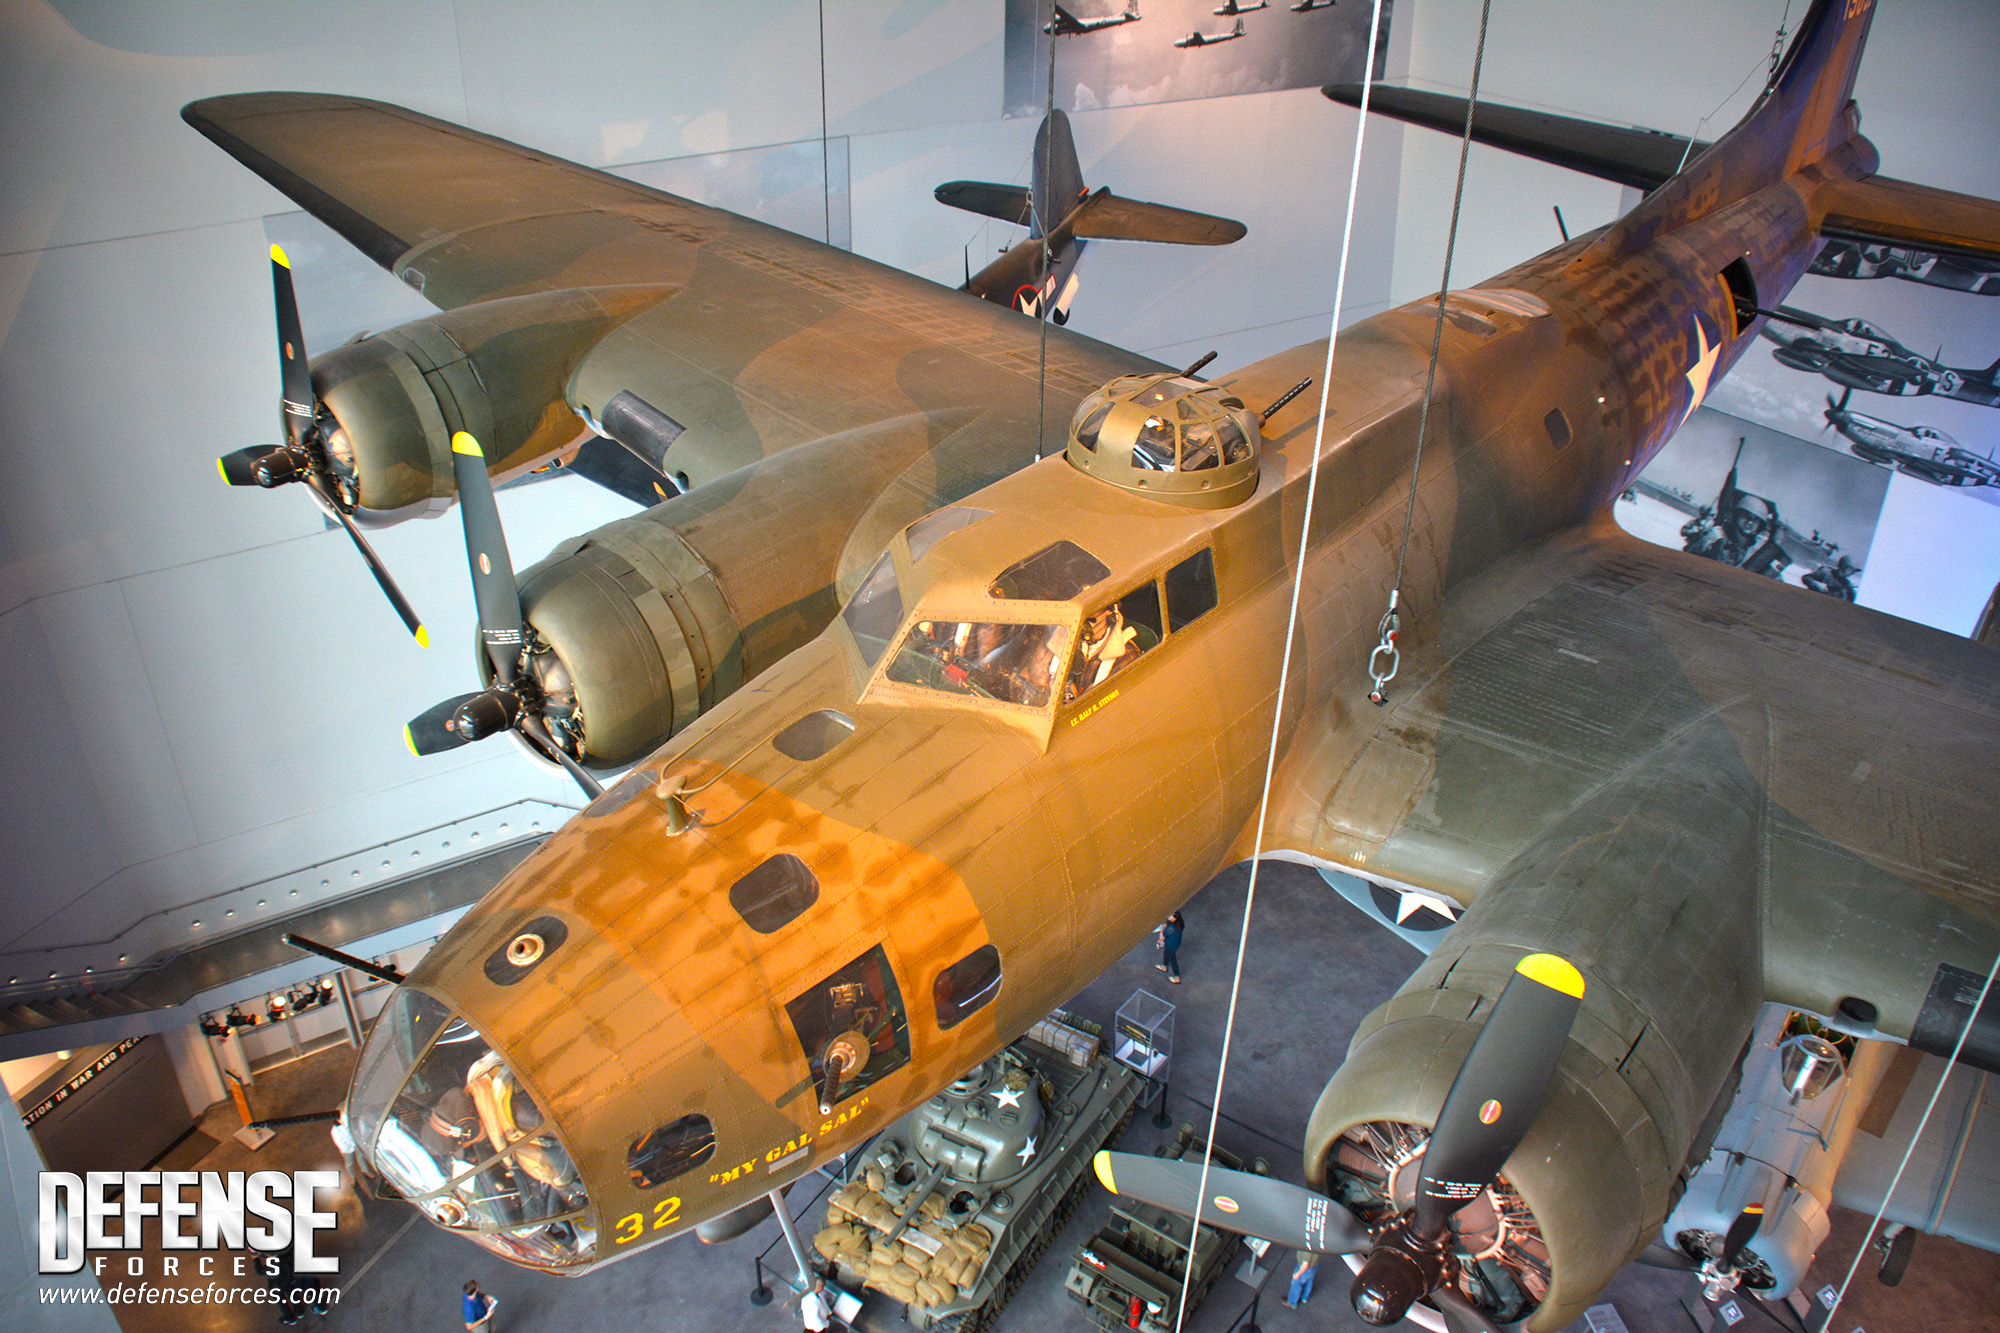 The National WWII Museum - 8